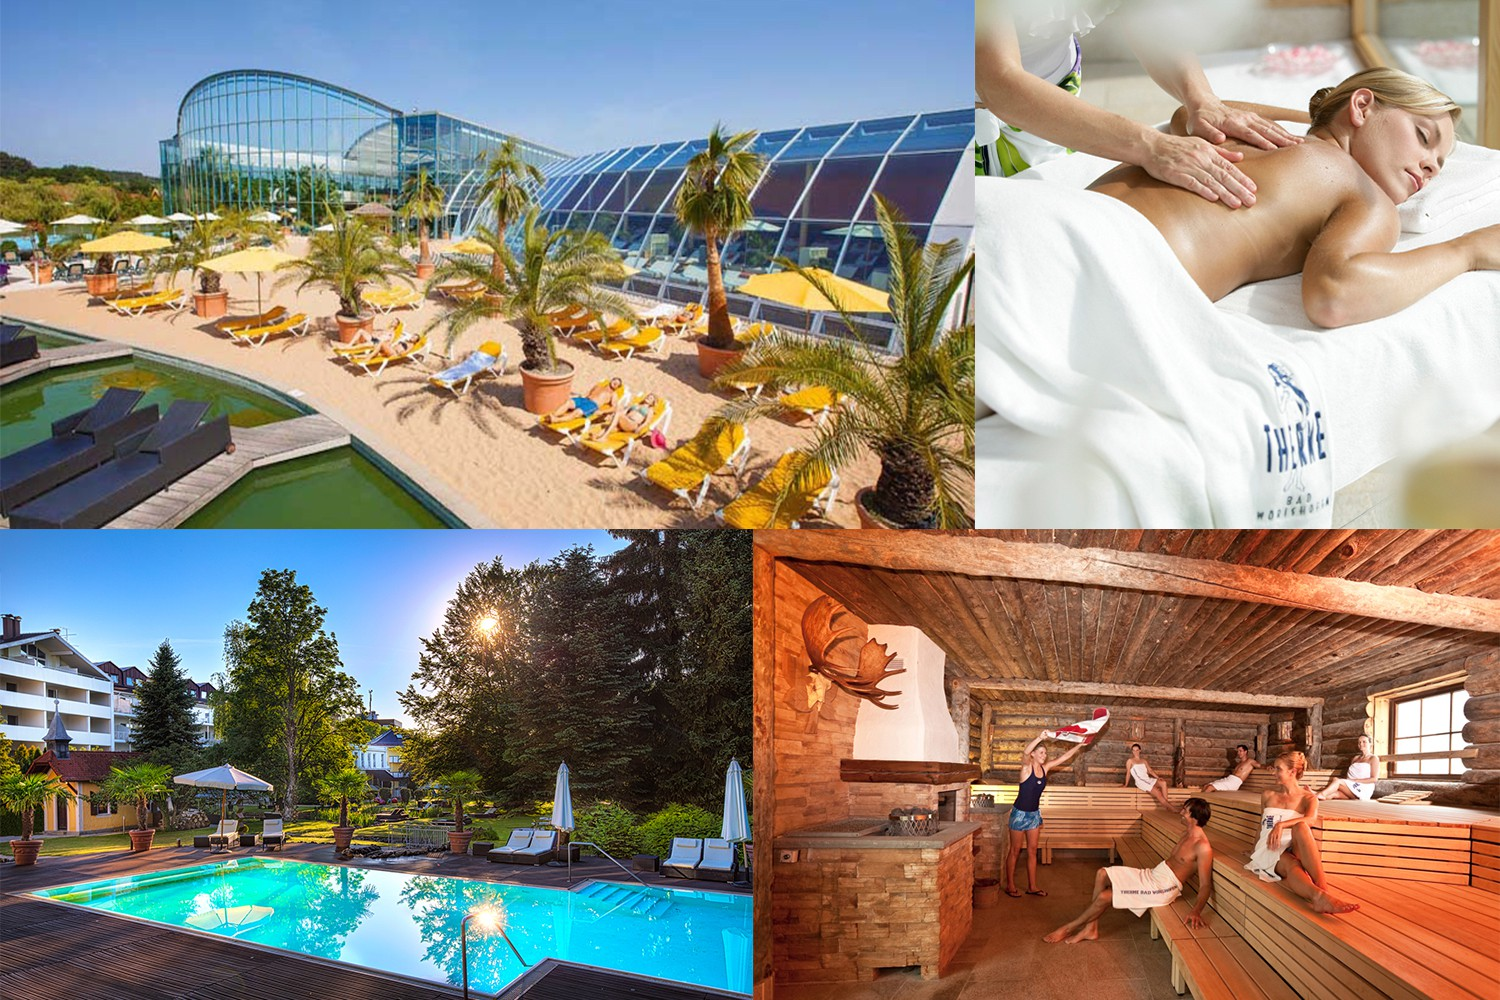 4 days in 4*S Park Hotel Residence in Bad Wörishofen & 2 tickets for the THERME Bad Wörishofen